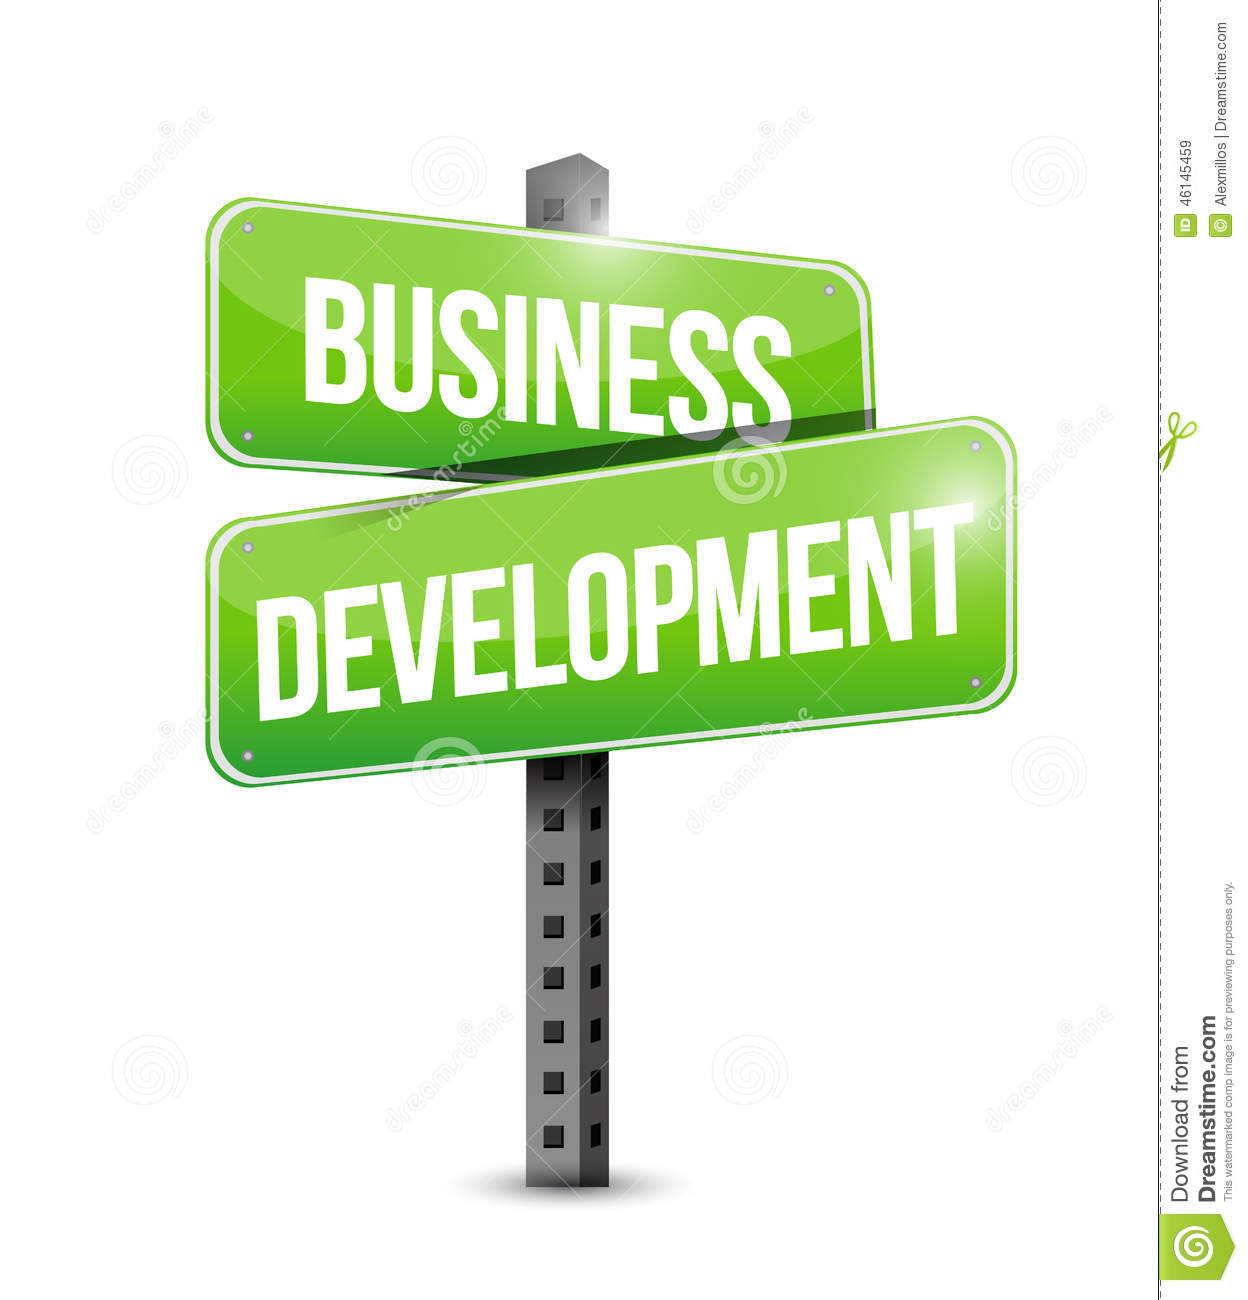 Business Development Road Sign Stock Illustration.